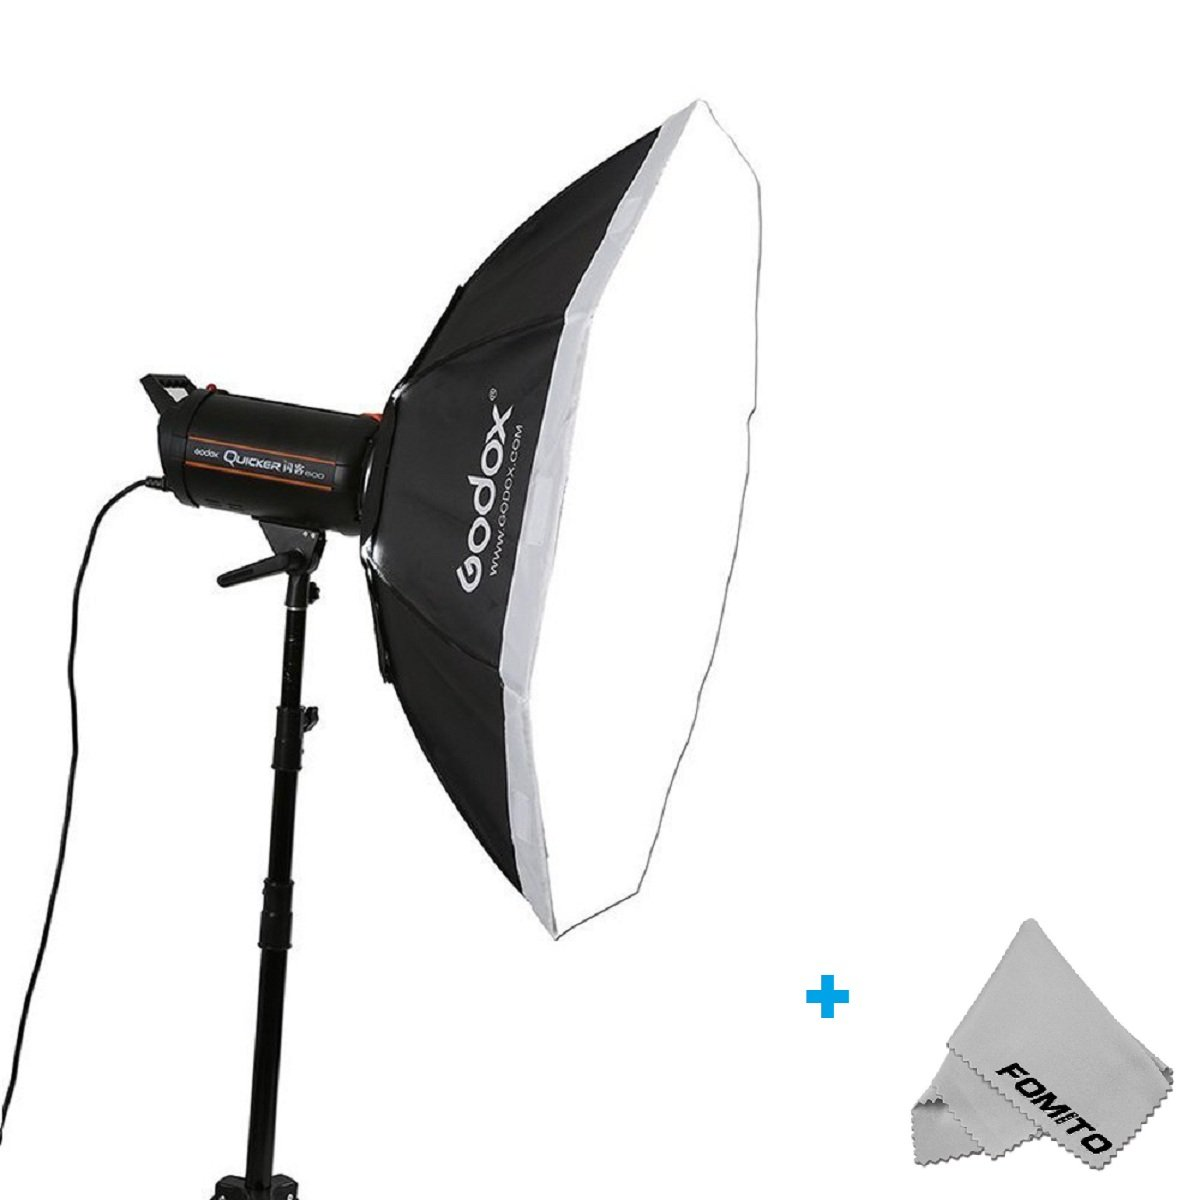 Fomito Godox Top Octagon Softbox 37Inch Octagon Softbox Photography Light Diffuser and Modifier with Bowens Speedring Mount For Monolight Photo Studio Strobe Lighting